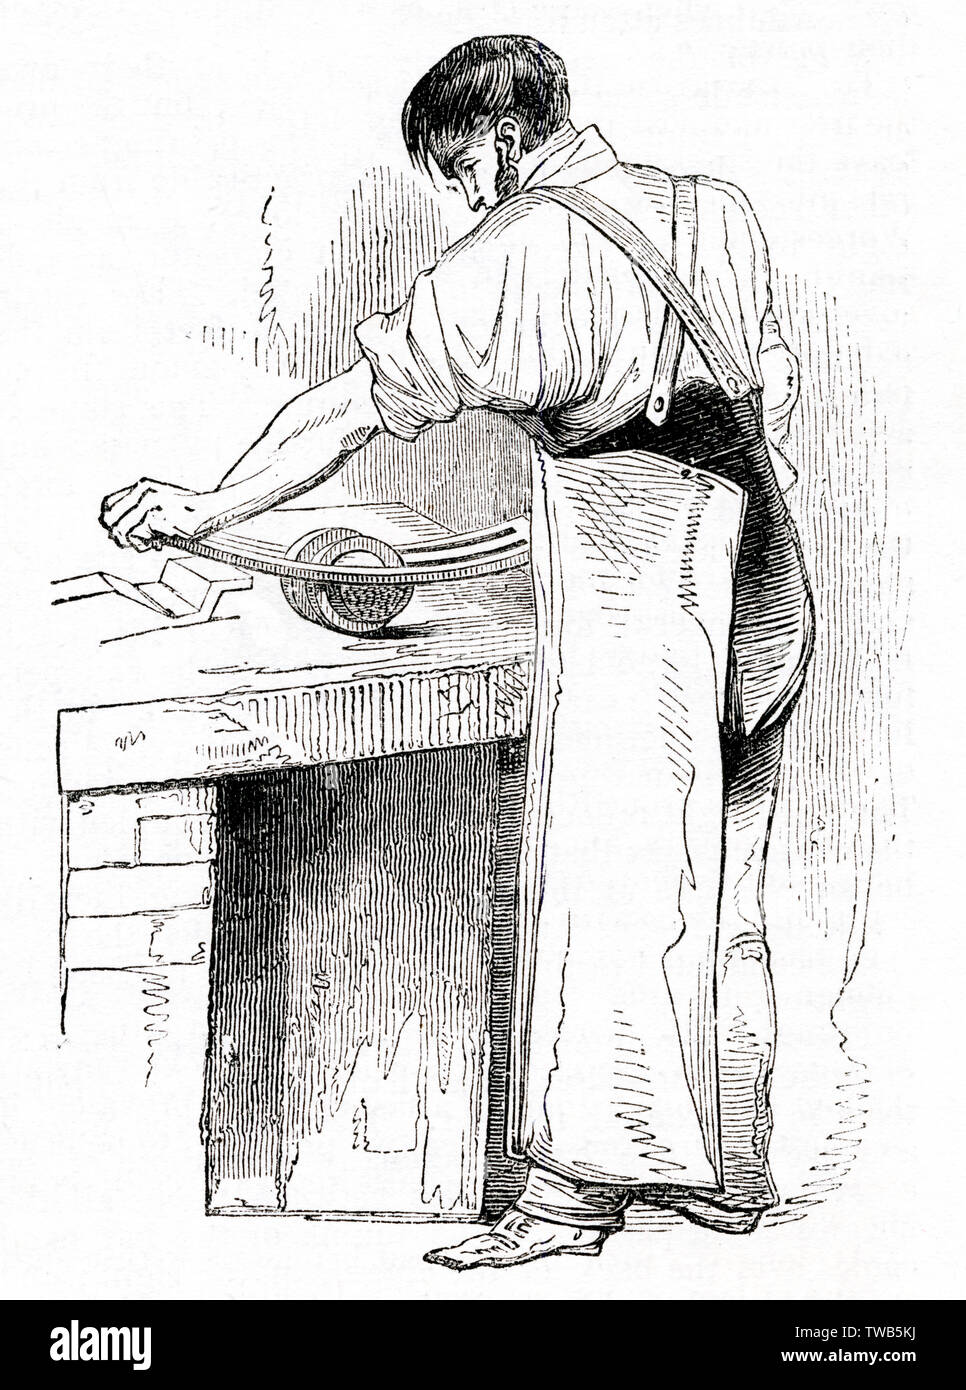 Scene at the British Needle Mills, Redditch, Worcestershire -- man rolling and straightening hot needles using a long piece of metal and two metal rings.        Date: 1843 - Stock Image